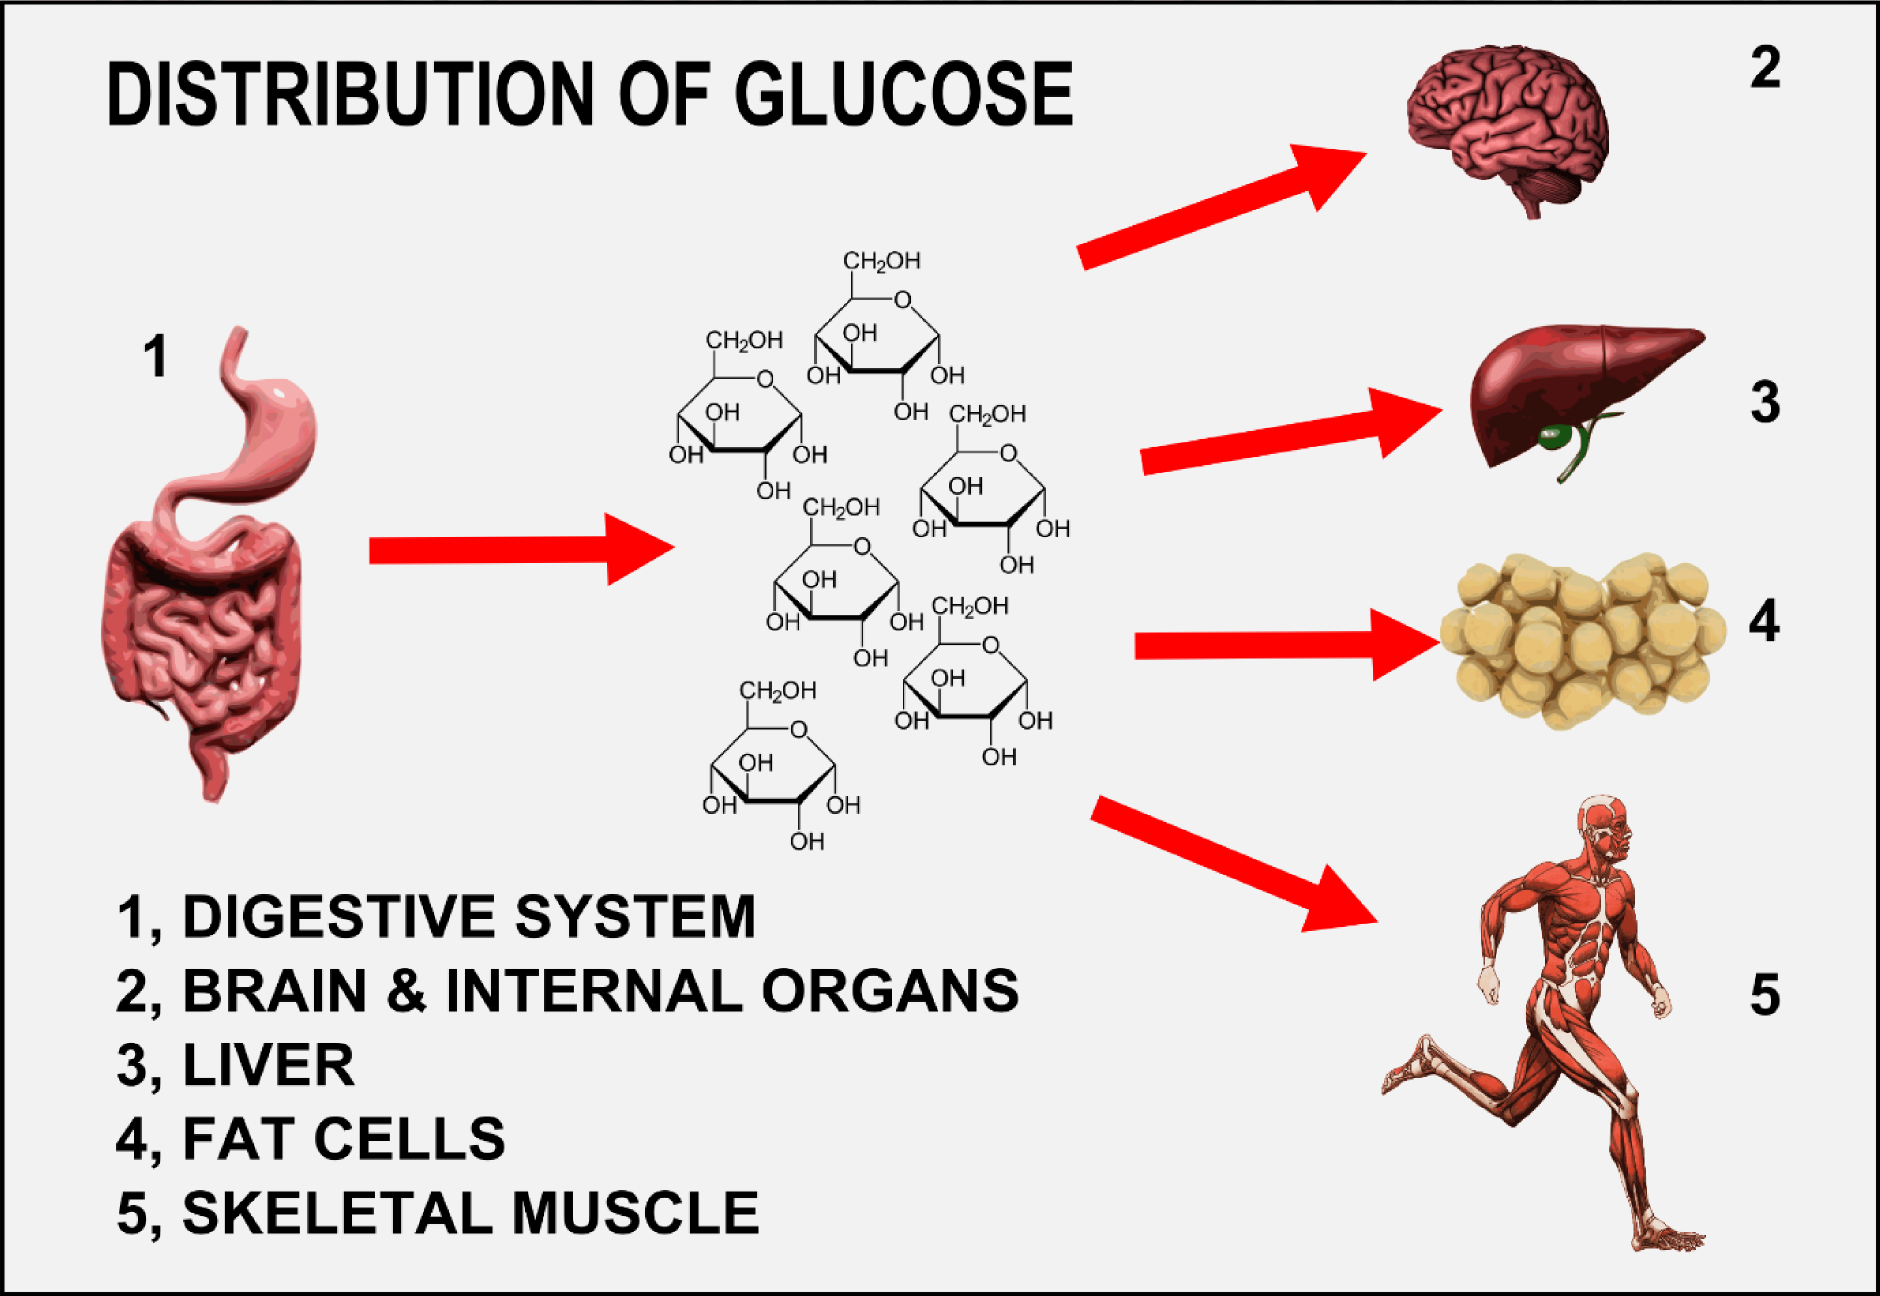 distribution of glucose.png